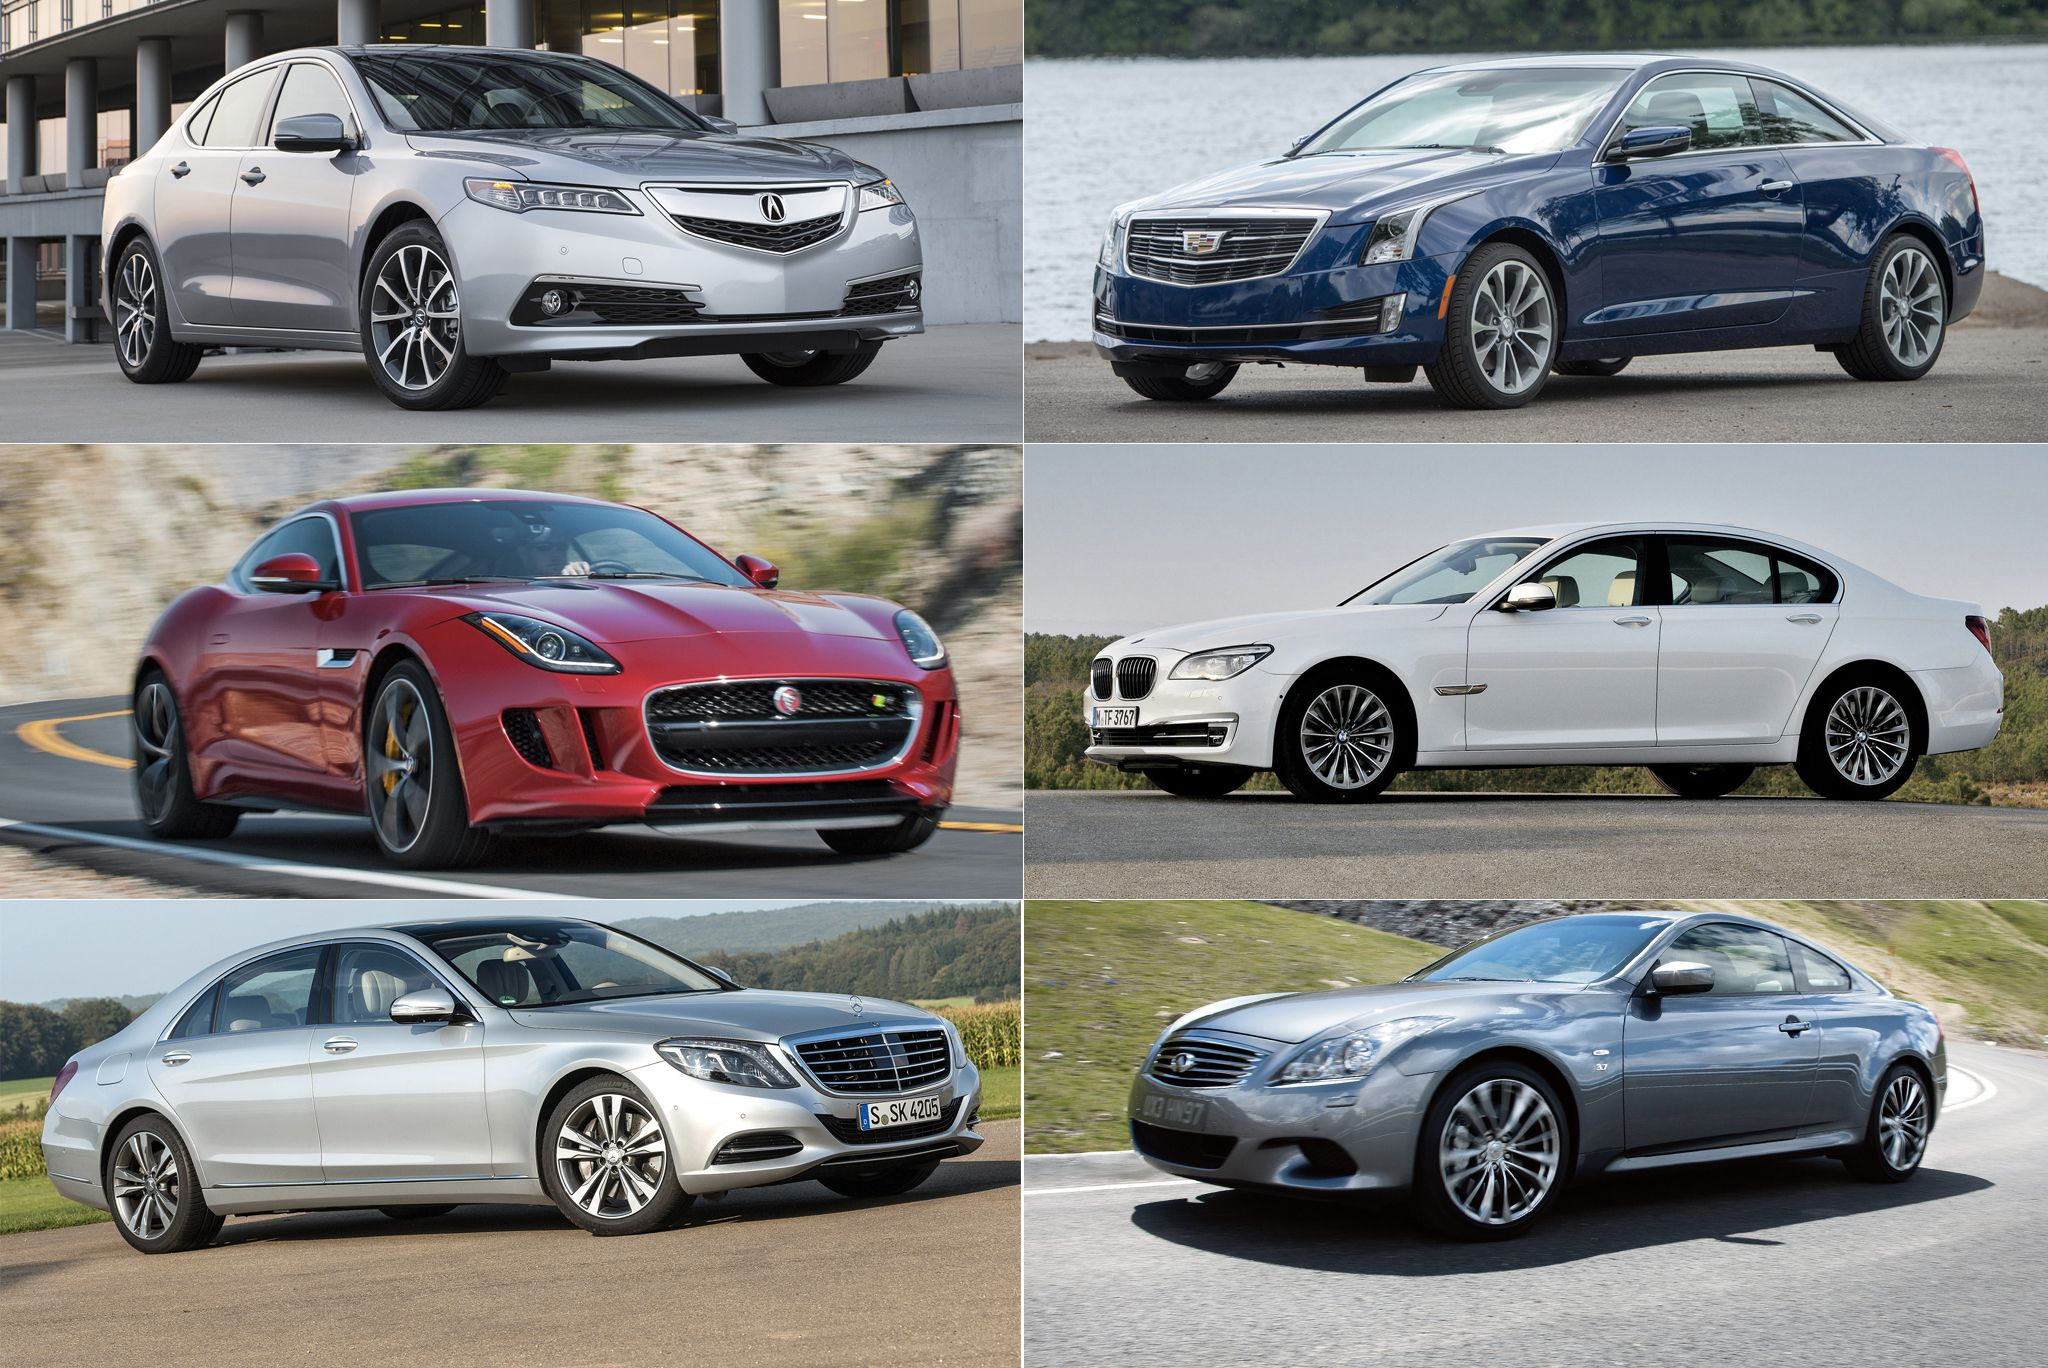 Top 10 Luxury Cars To Attract Women Top 10 Luxury Cars Luxury Car Brands Luxury Cars